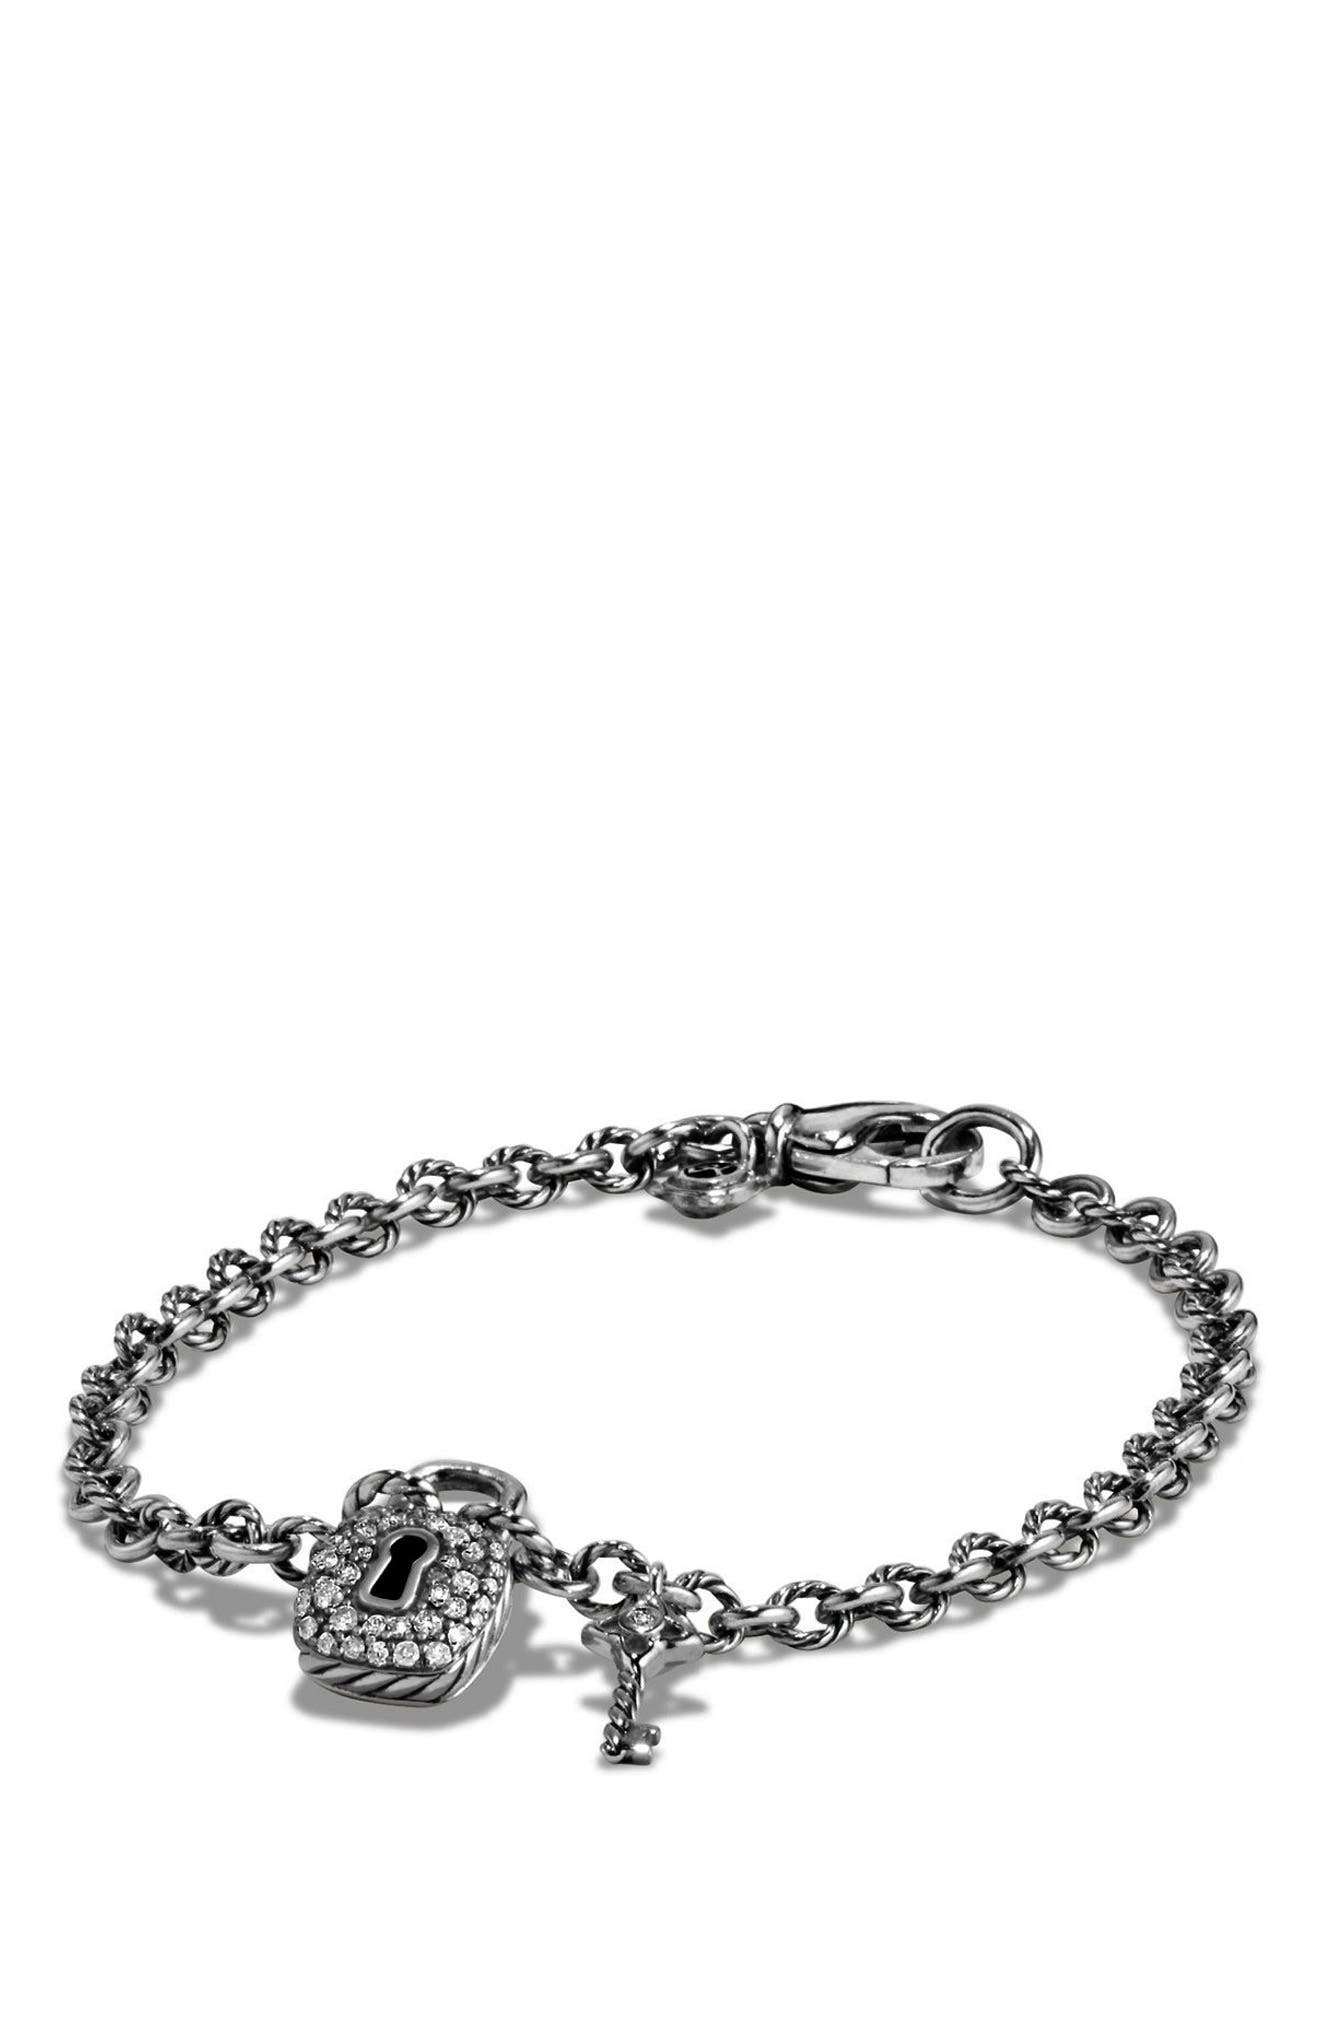 'Cable Collectibles' Lock and Key Charm Bracelet with Diamonds,                             Alternate thumbnail 4, color,                             SILVER